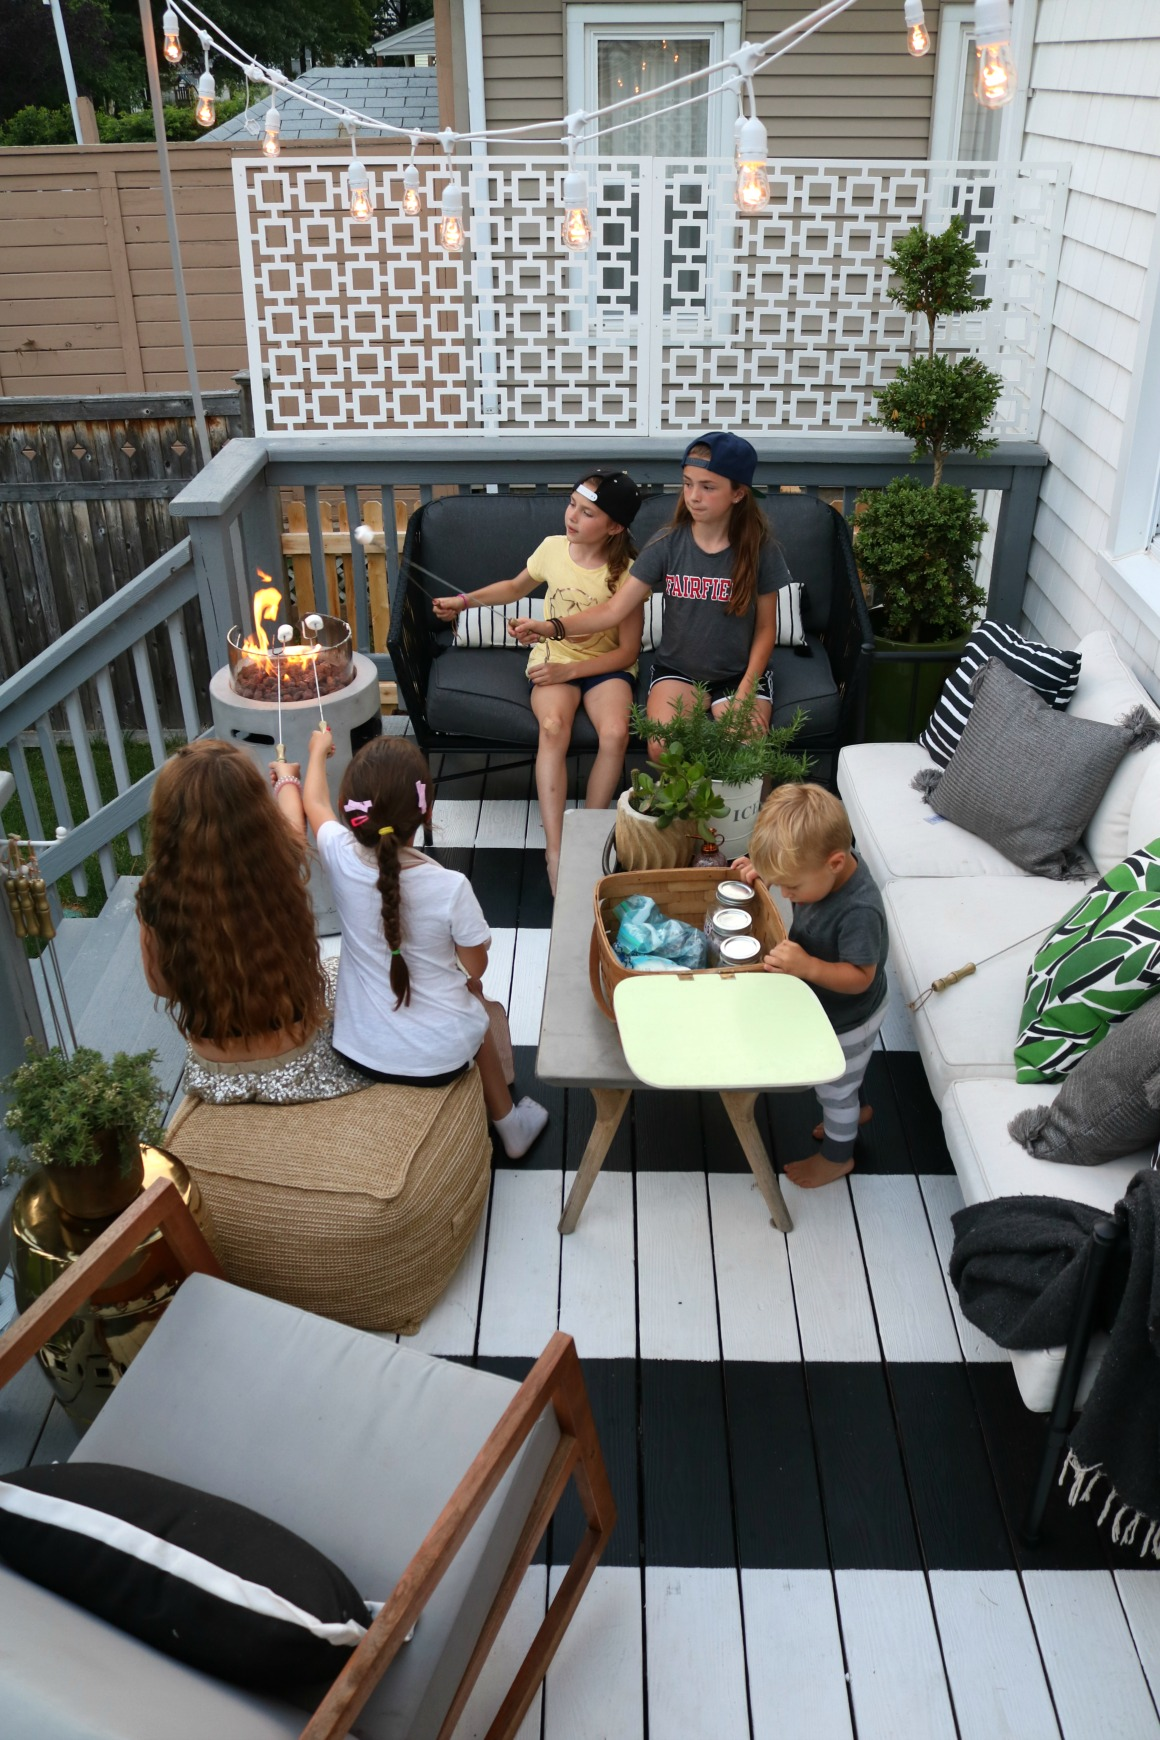 Friday Favorites- Summer in the Backyard